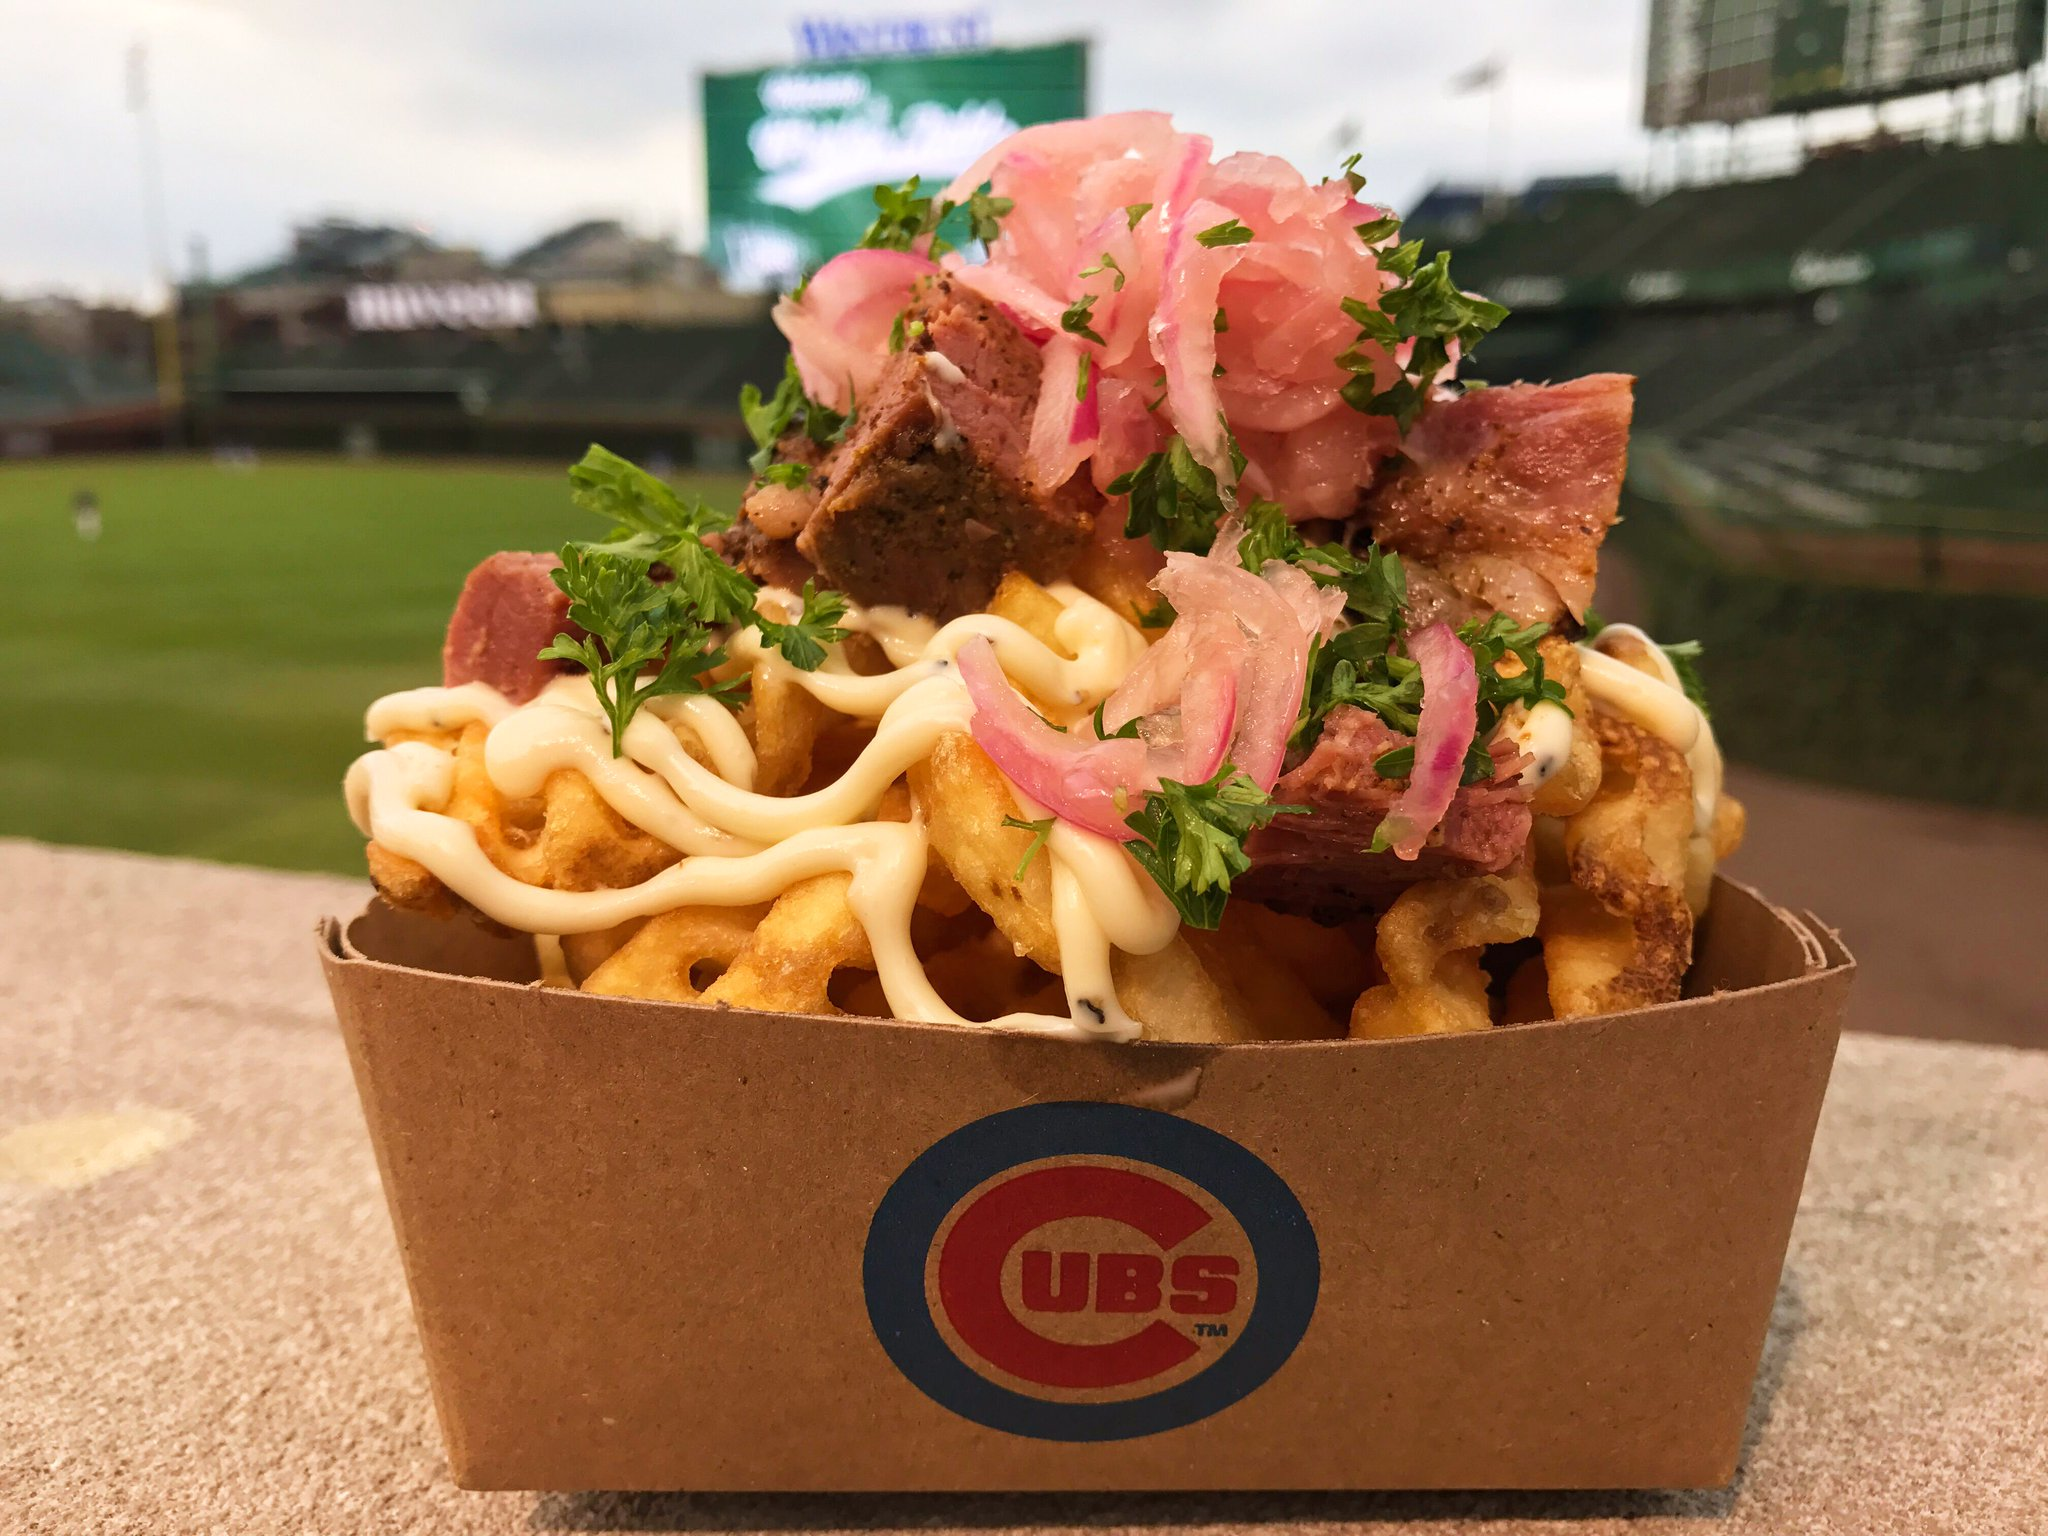 Part of a well-balanced ballpark diet. #FoodieFridays https://t.co/vu4At4shOm